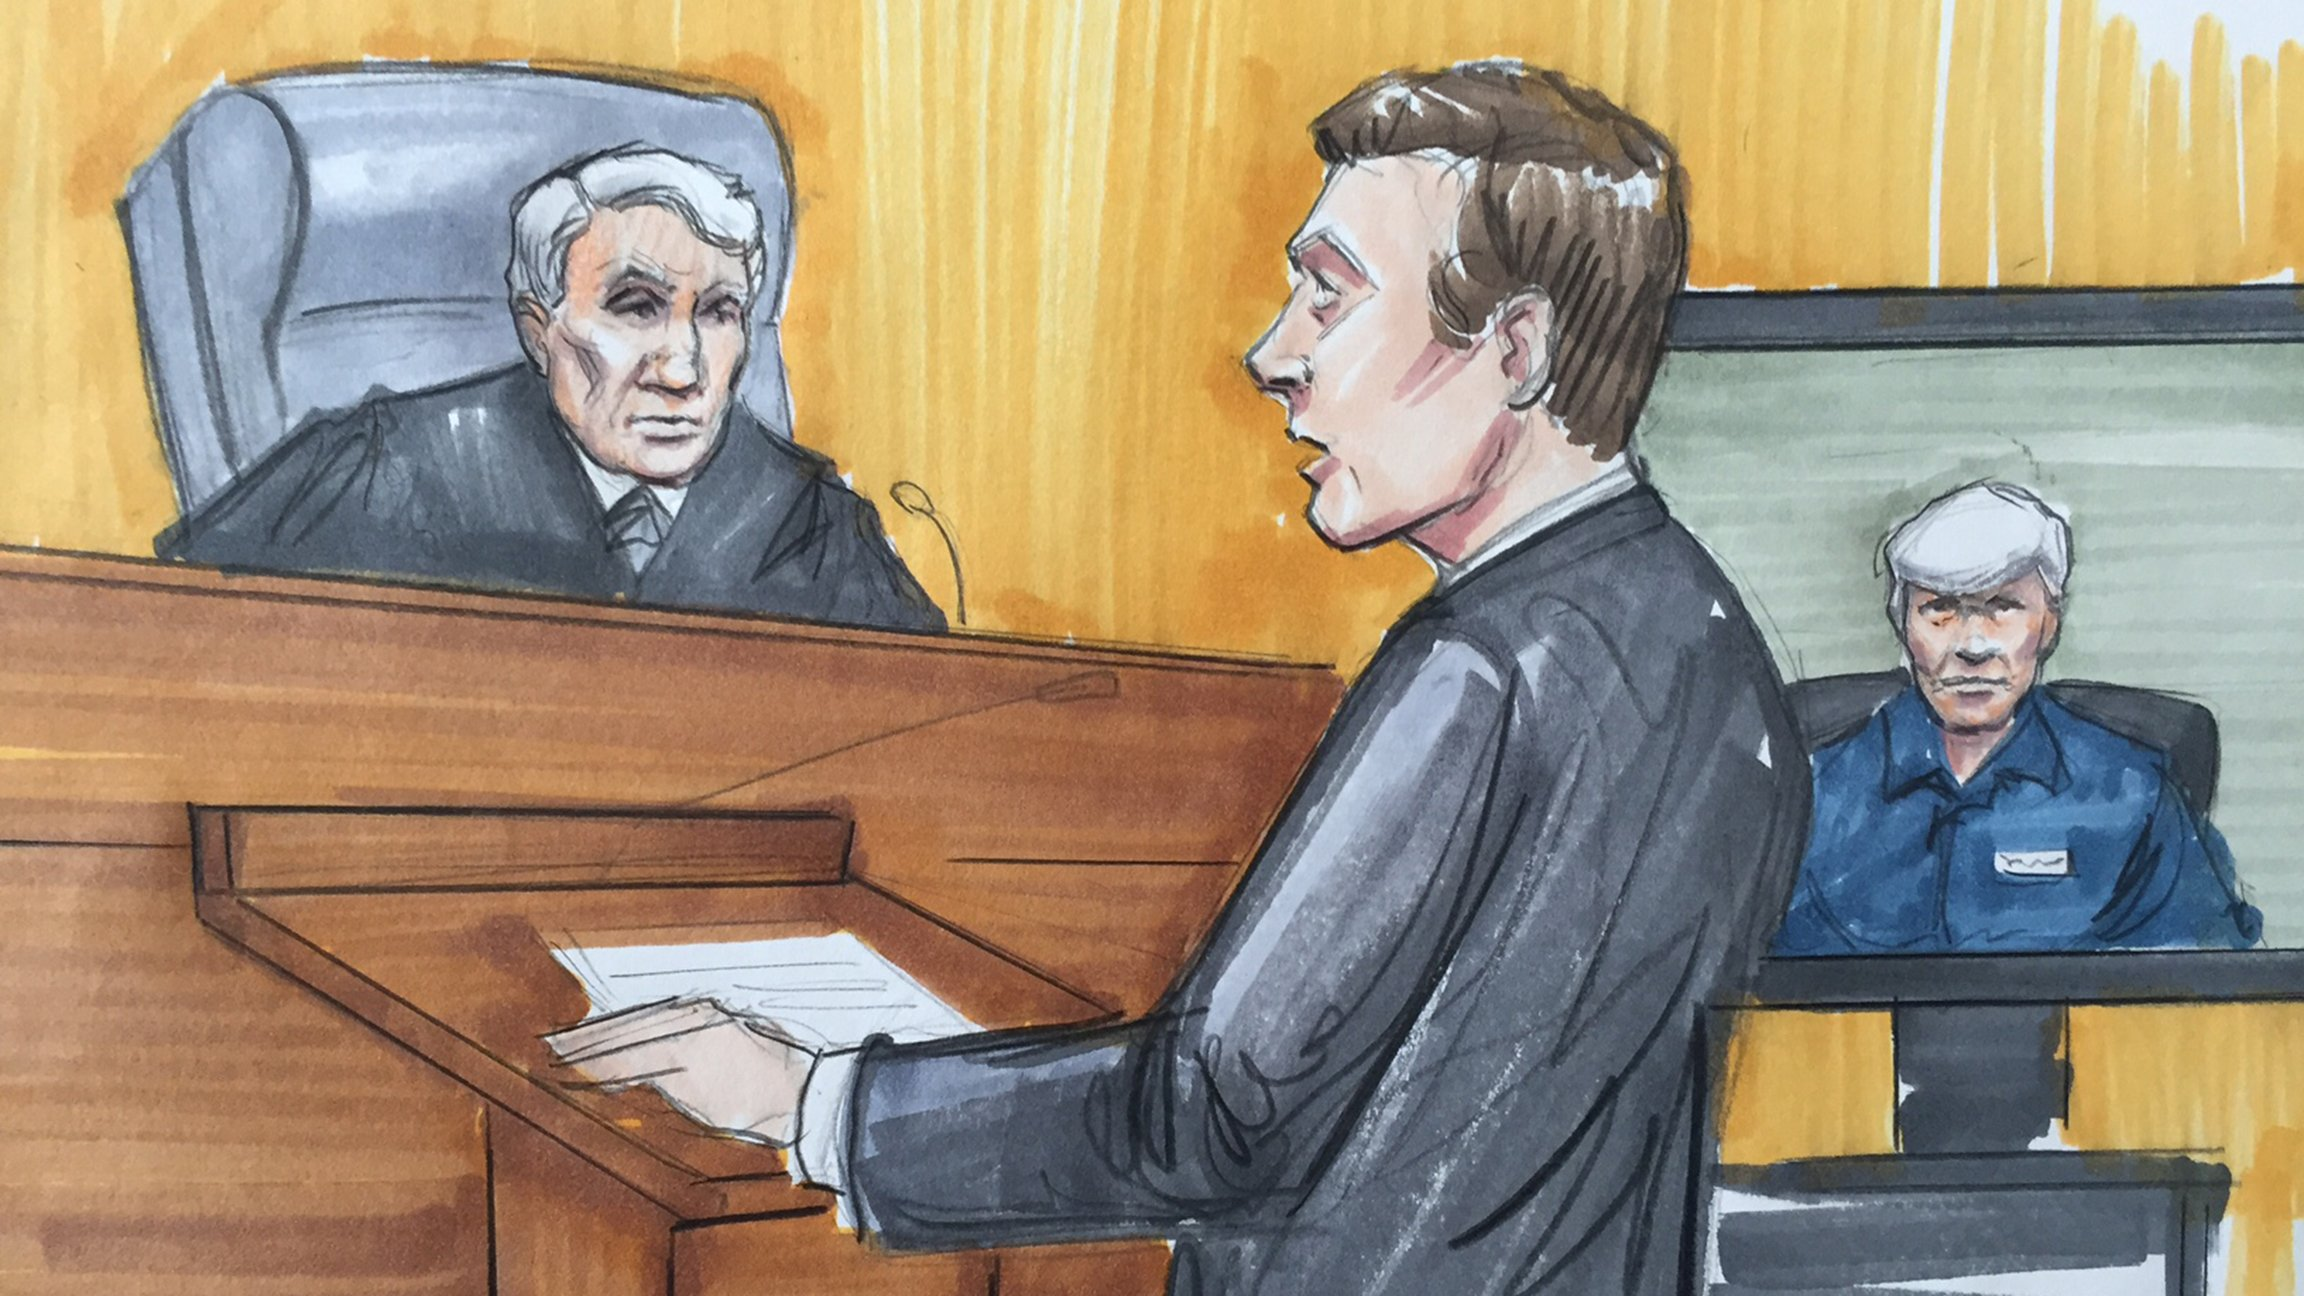 Rod Blagojevich, right, sits during a 2016 appellate court hearing. (Courtroom art by Thomas Gianni)